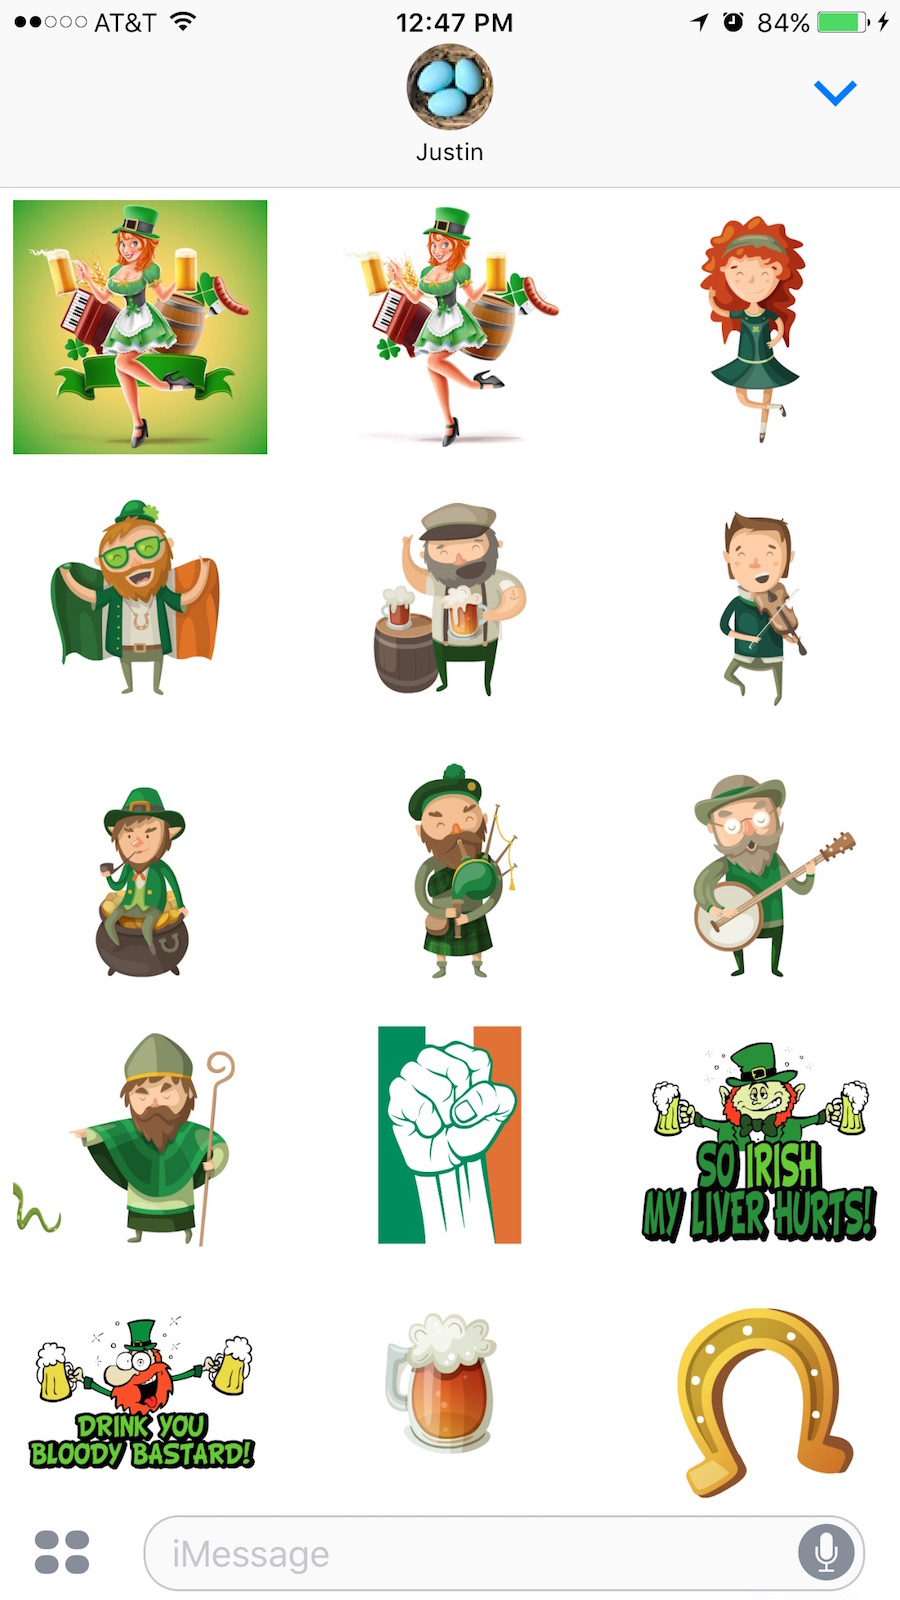 irish stickers for iOS messages